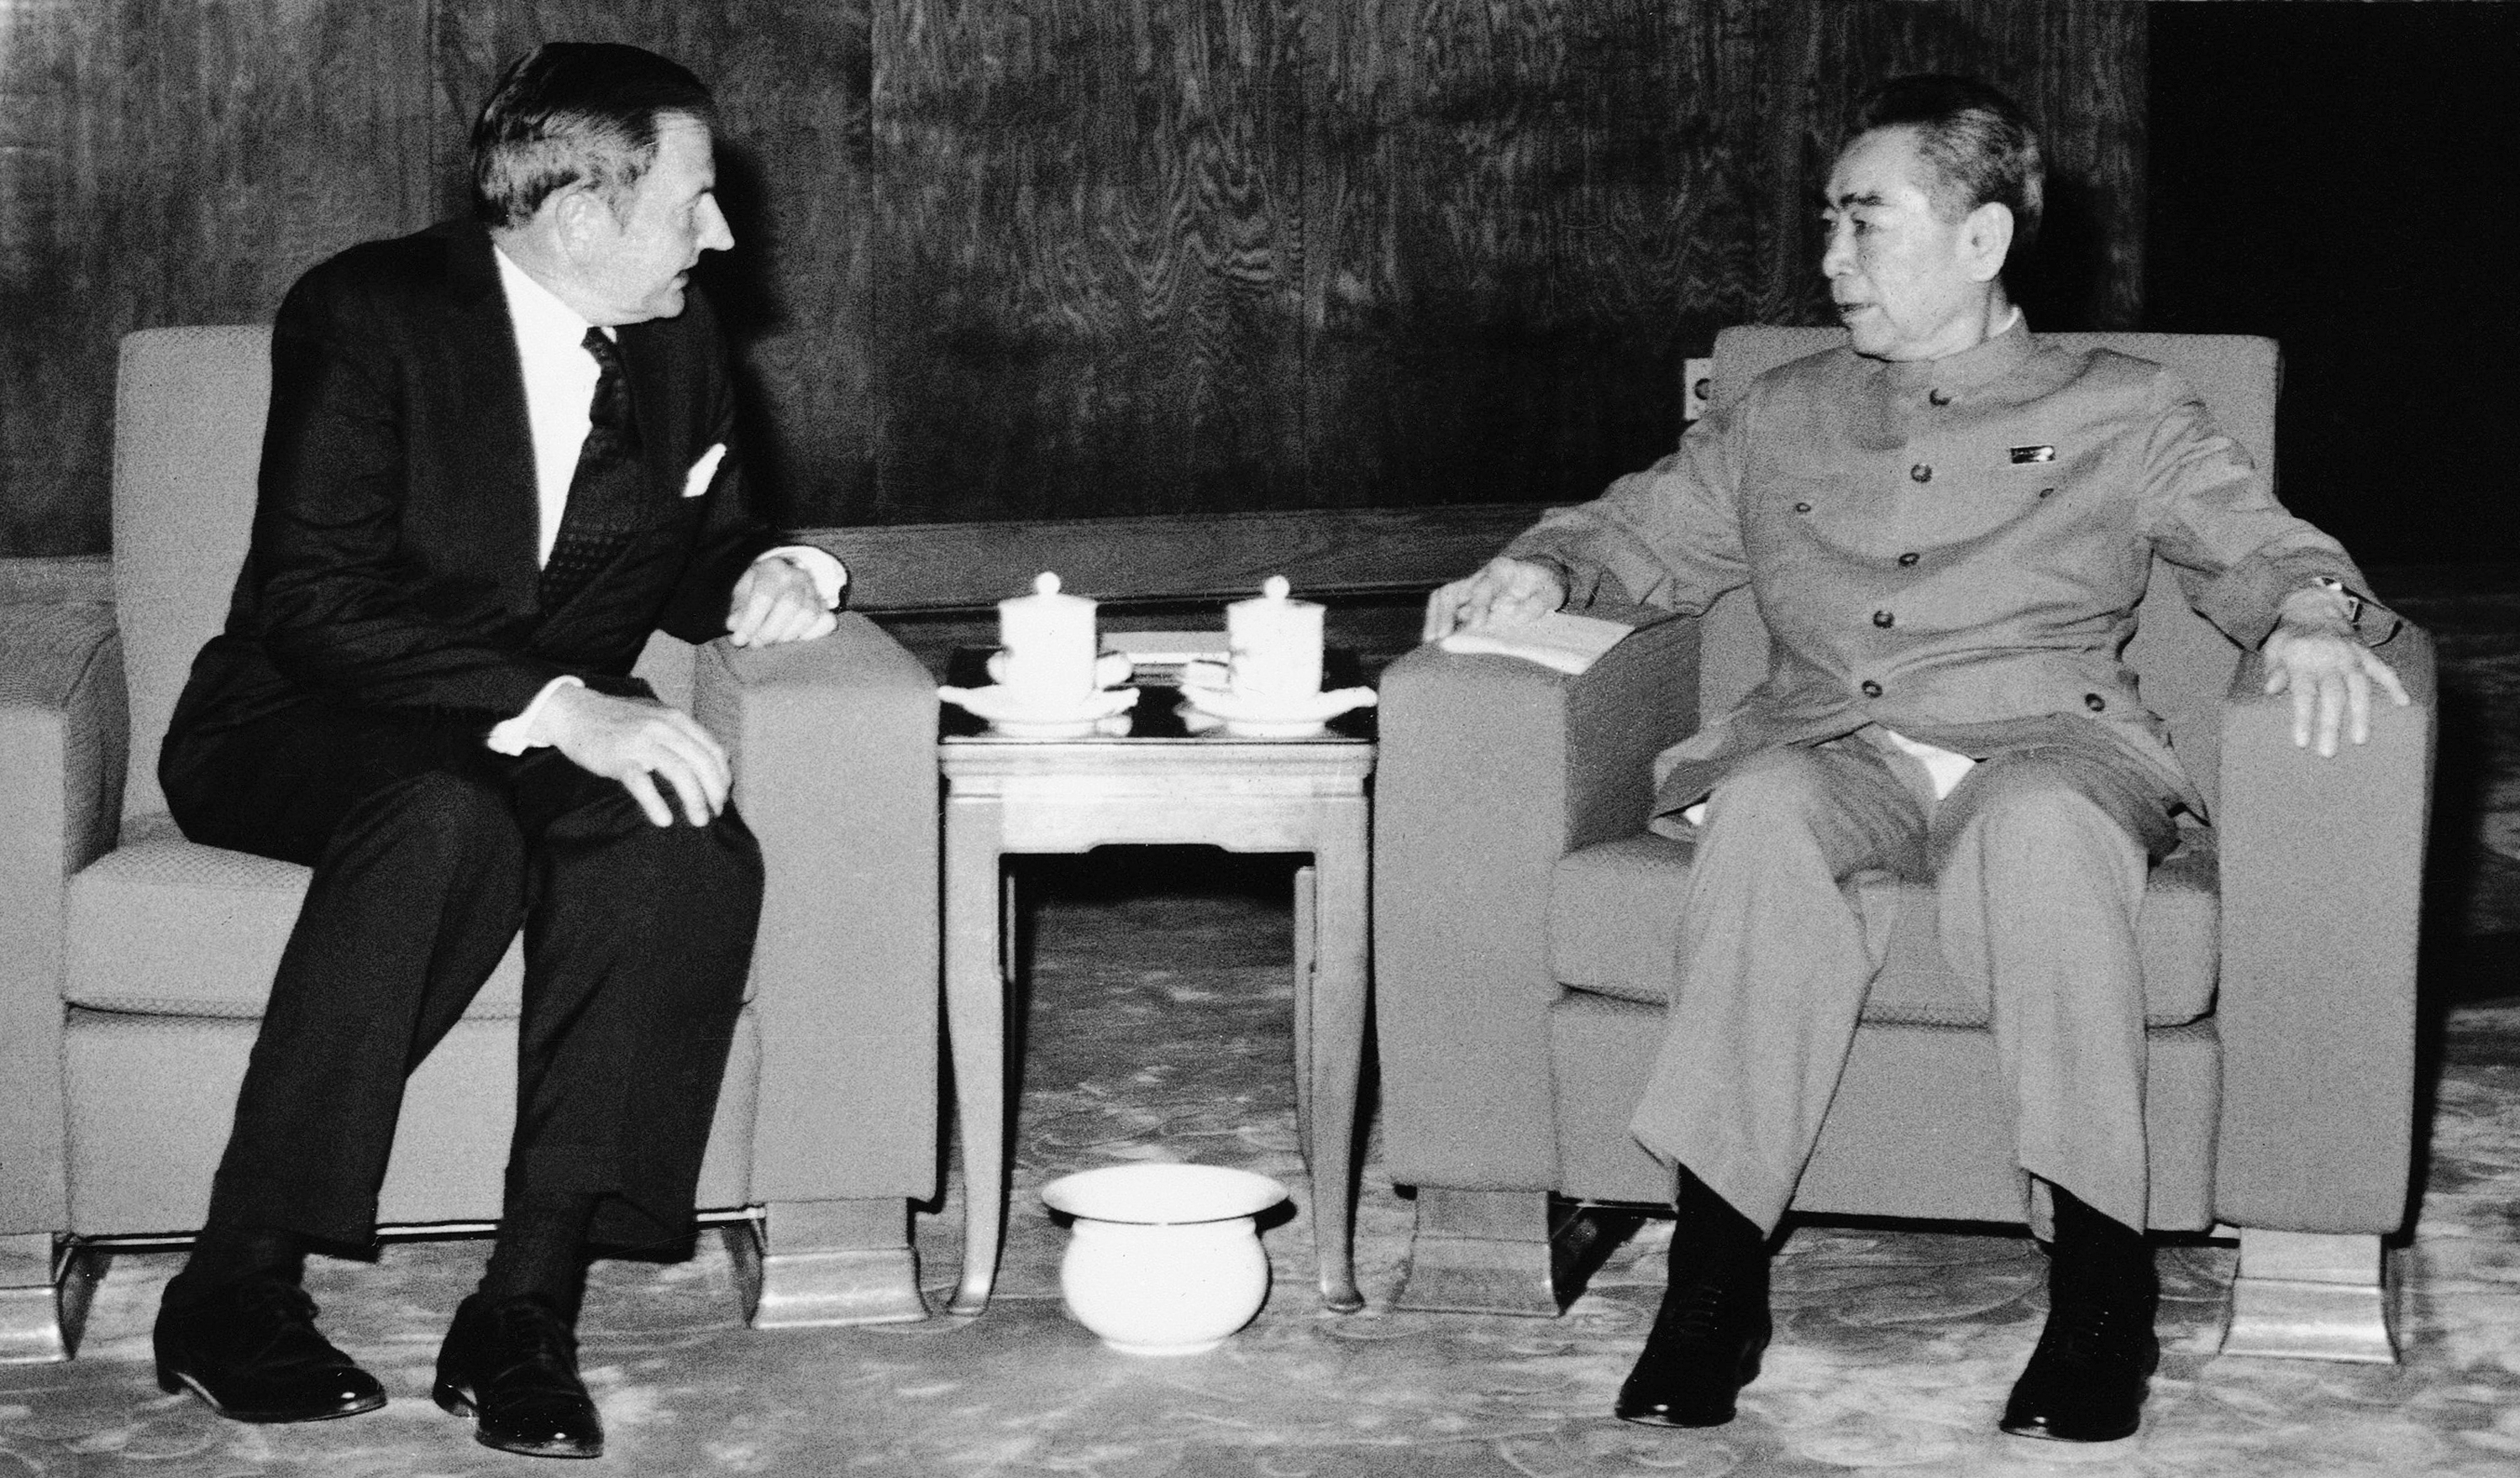 Obit David Rockefeller-2 FILE - In this June 1973, file photo, David Rockefeller, left, meets with with Chinese Premier Chou En-lai in Peking. The billionaire philanthropist who was the last of his generation in the famously philanthropic Rockefeller family died Monday, March 20, 2017, according to a family spokesman. (AP Photo/File)